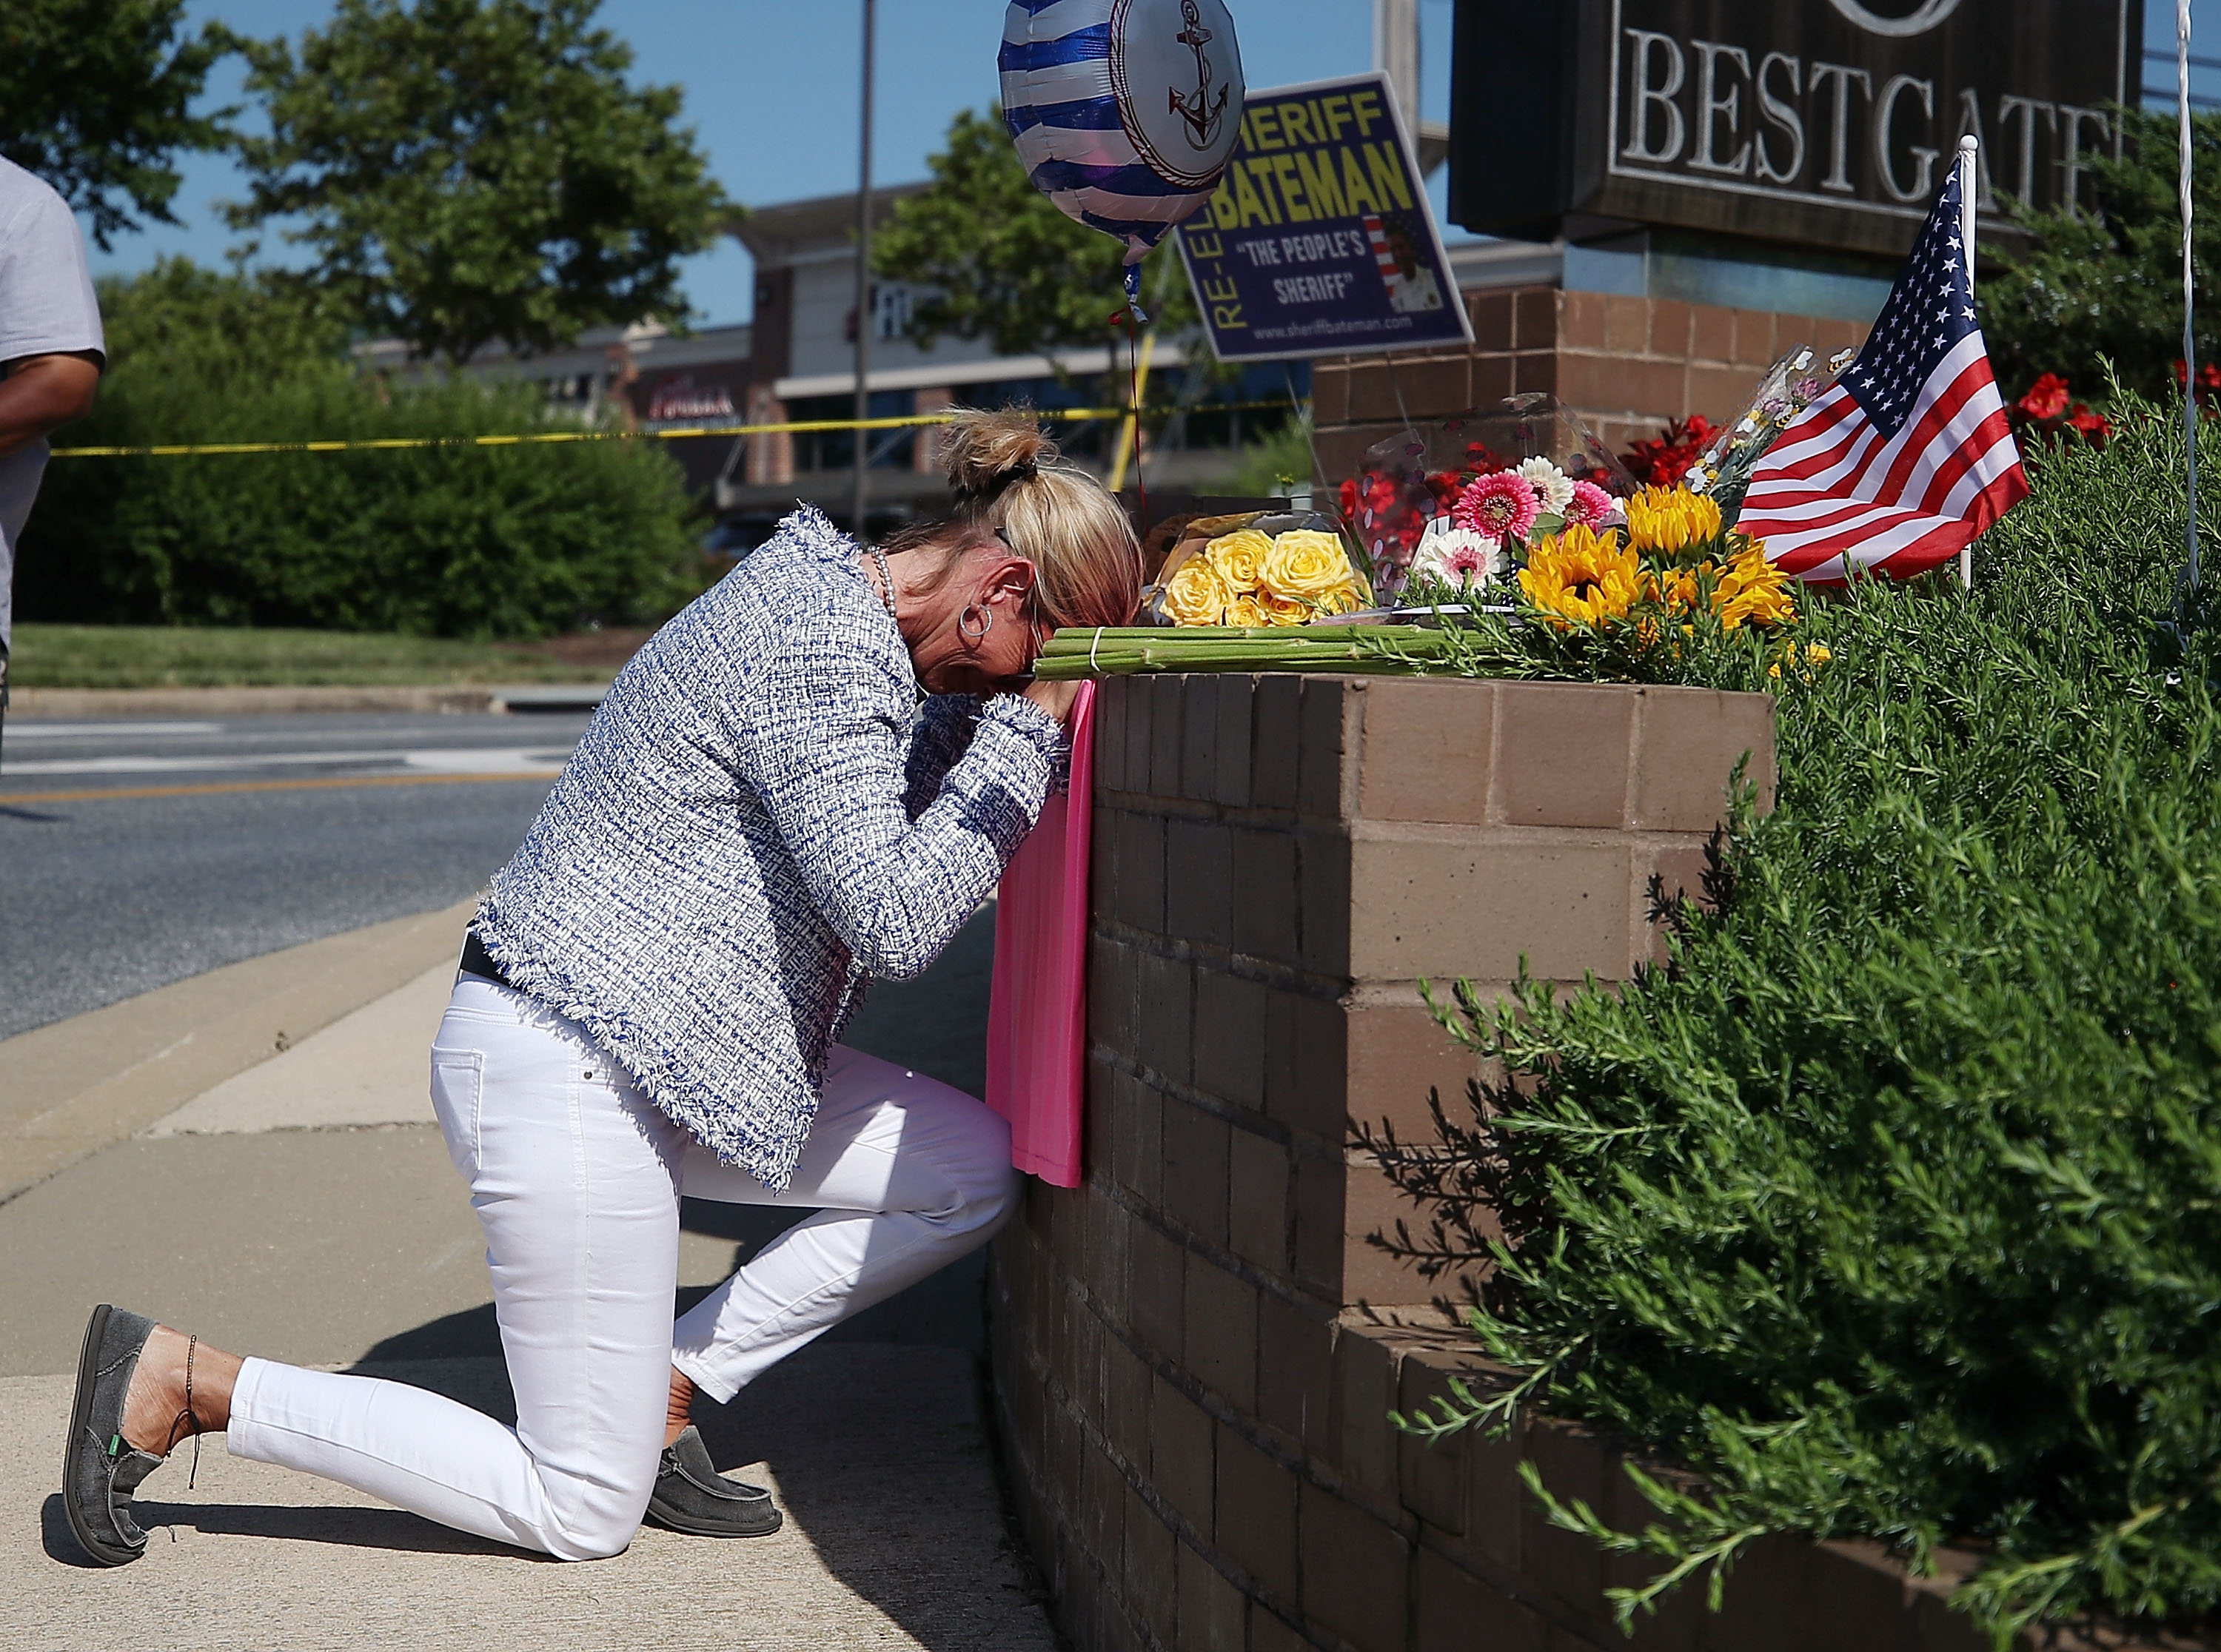 Lynne Griffin pays her respects at a makeshift memorial near the Capital Gazette where 5 people were shot and killed by a gunman on Thursday, on June 29, 2018 in Annapolis, Maryland. (Photo by Mark Wilson/Getty Images)